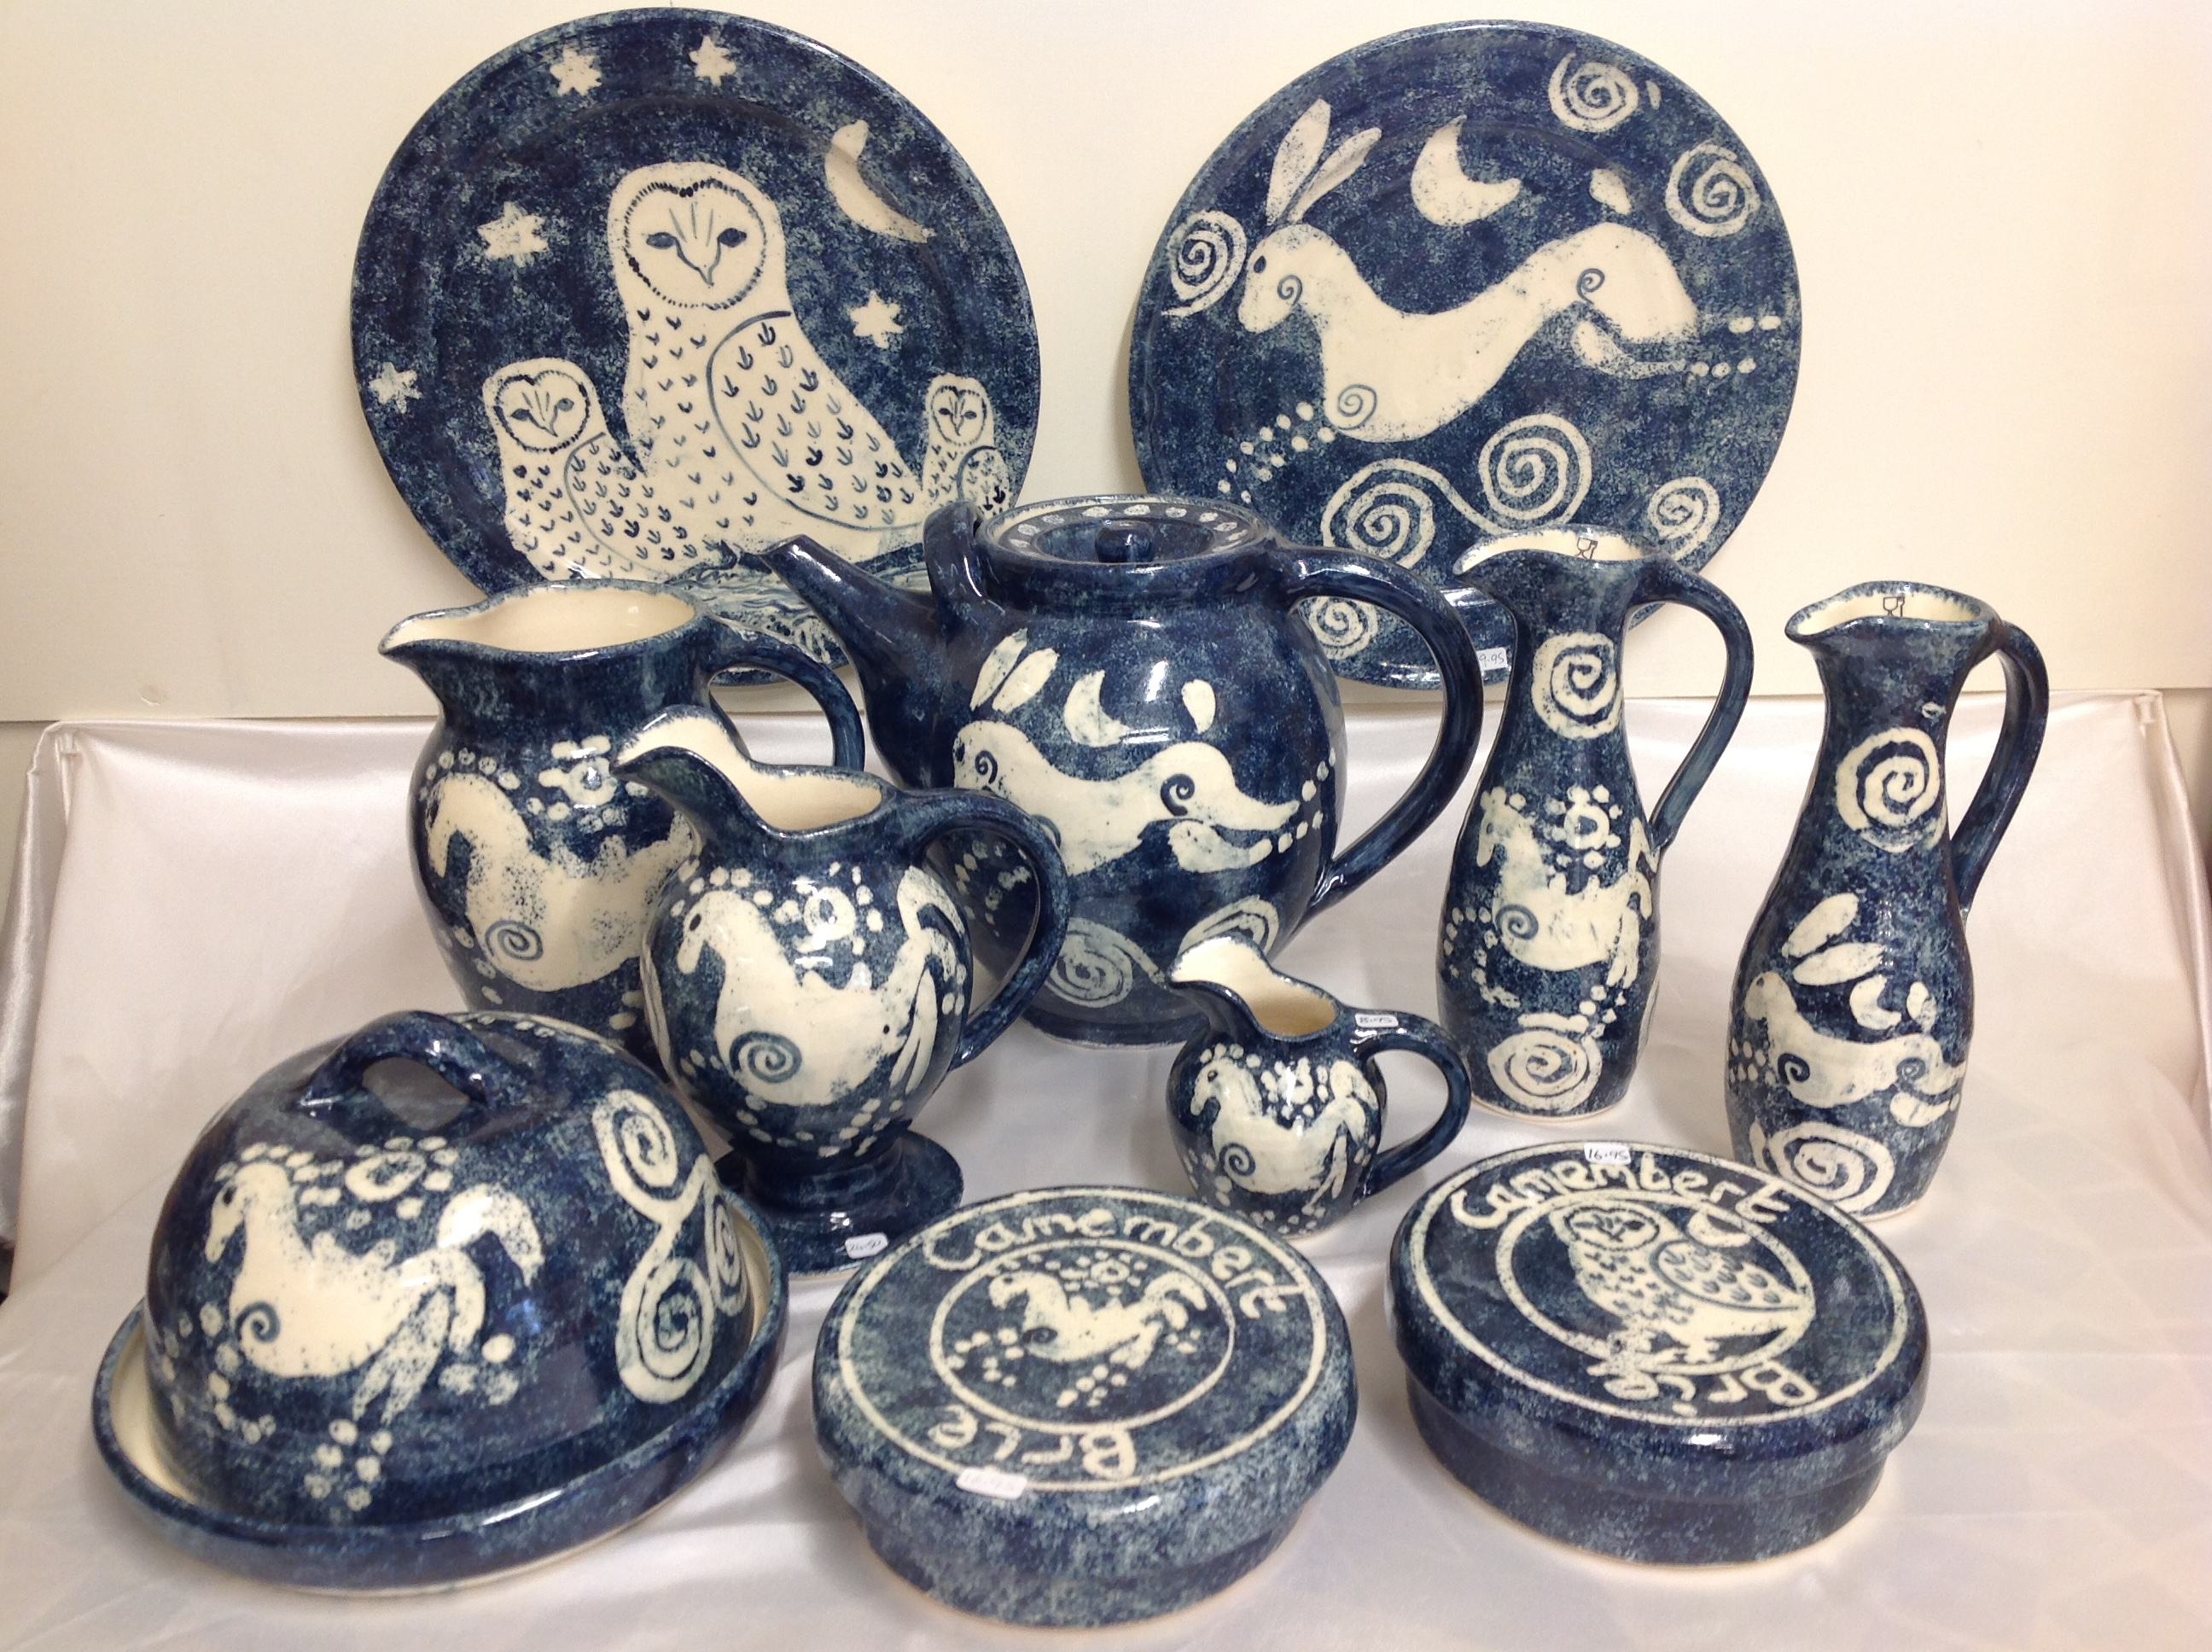 selection of pottery plates, jugs and dishes